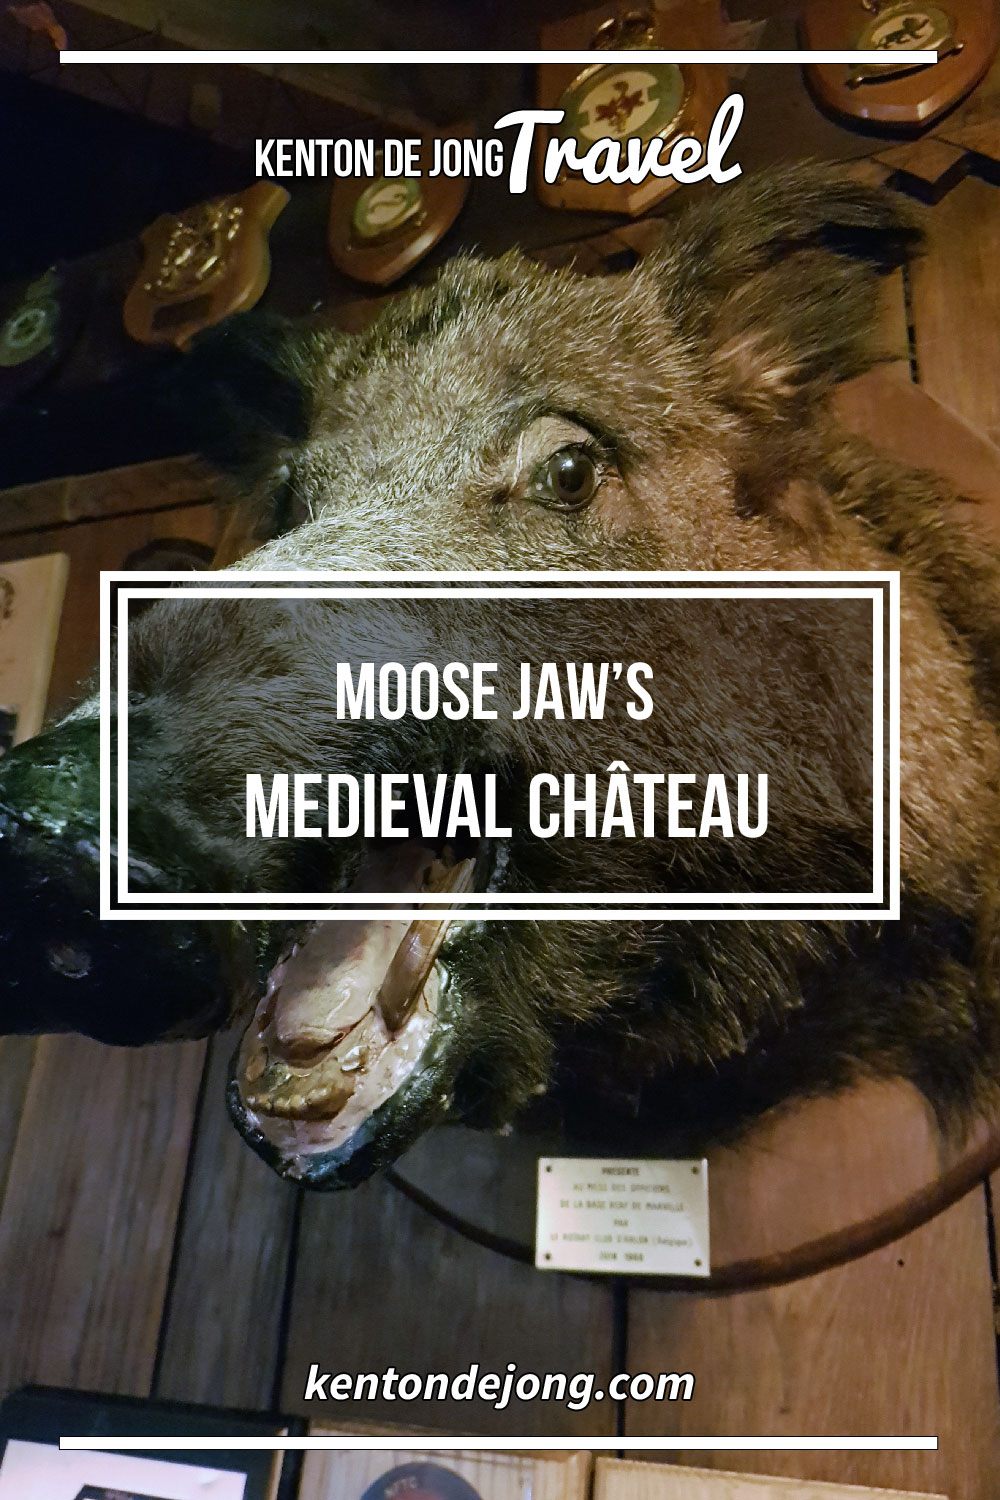 Moose Jaw's Medieval Château